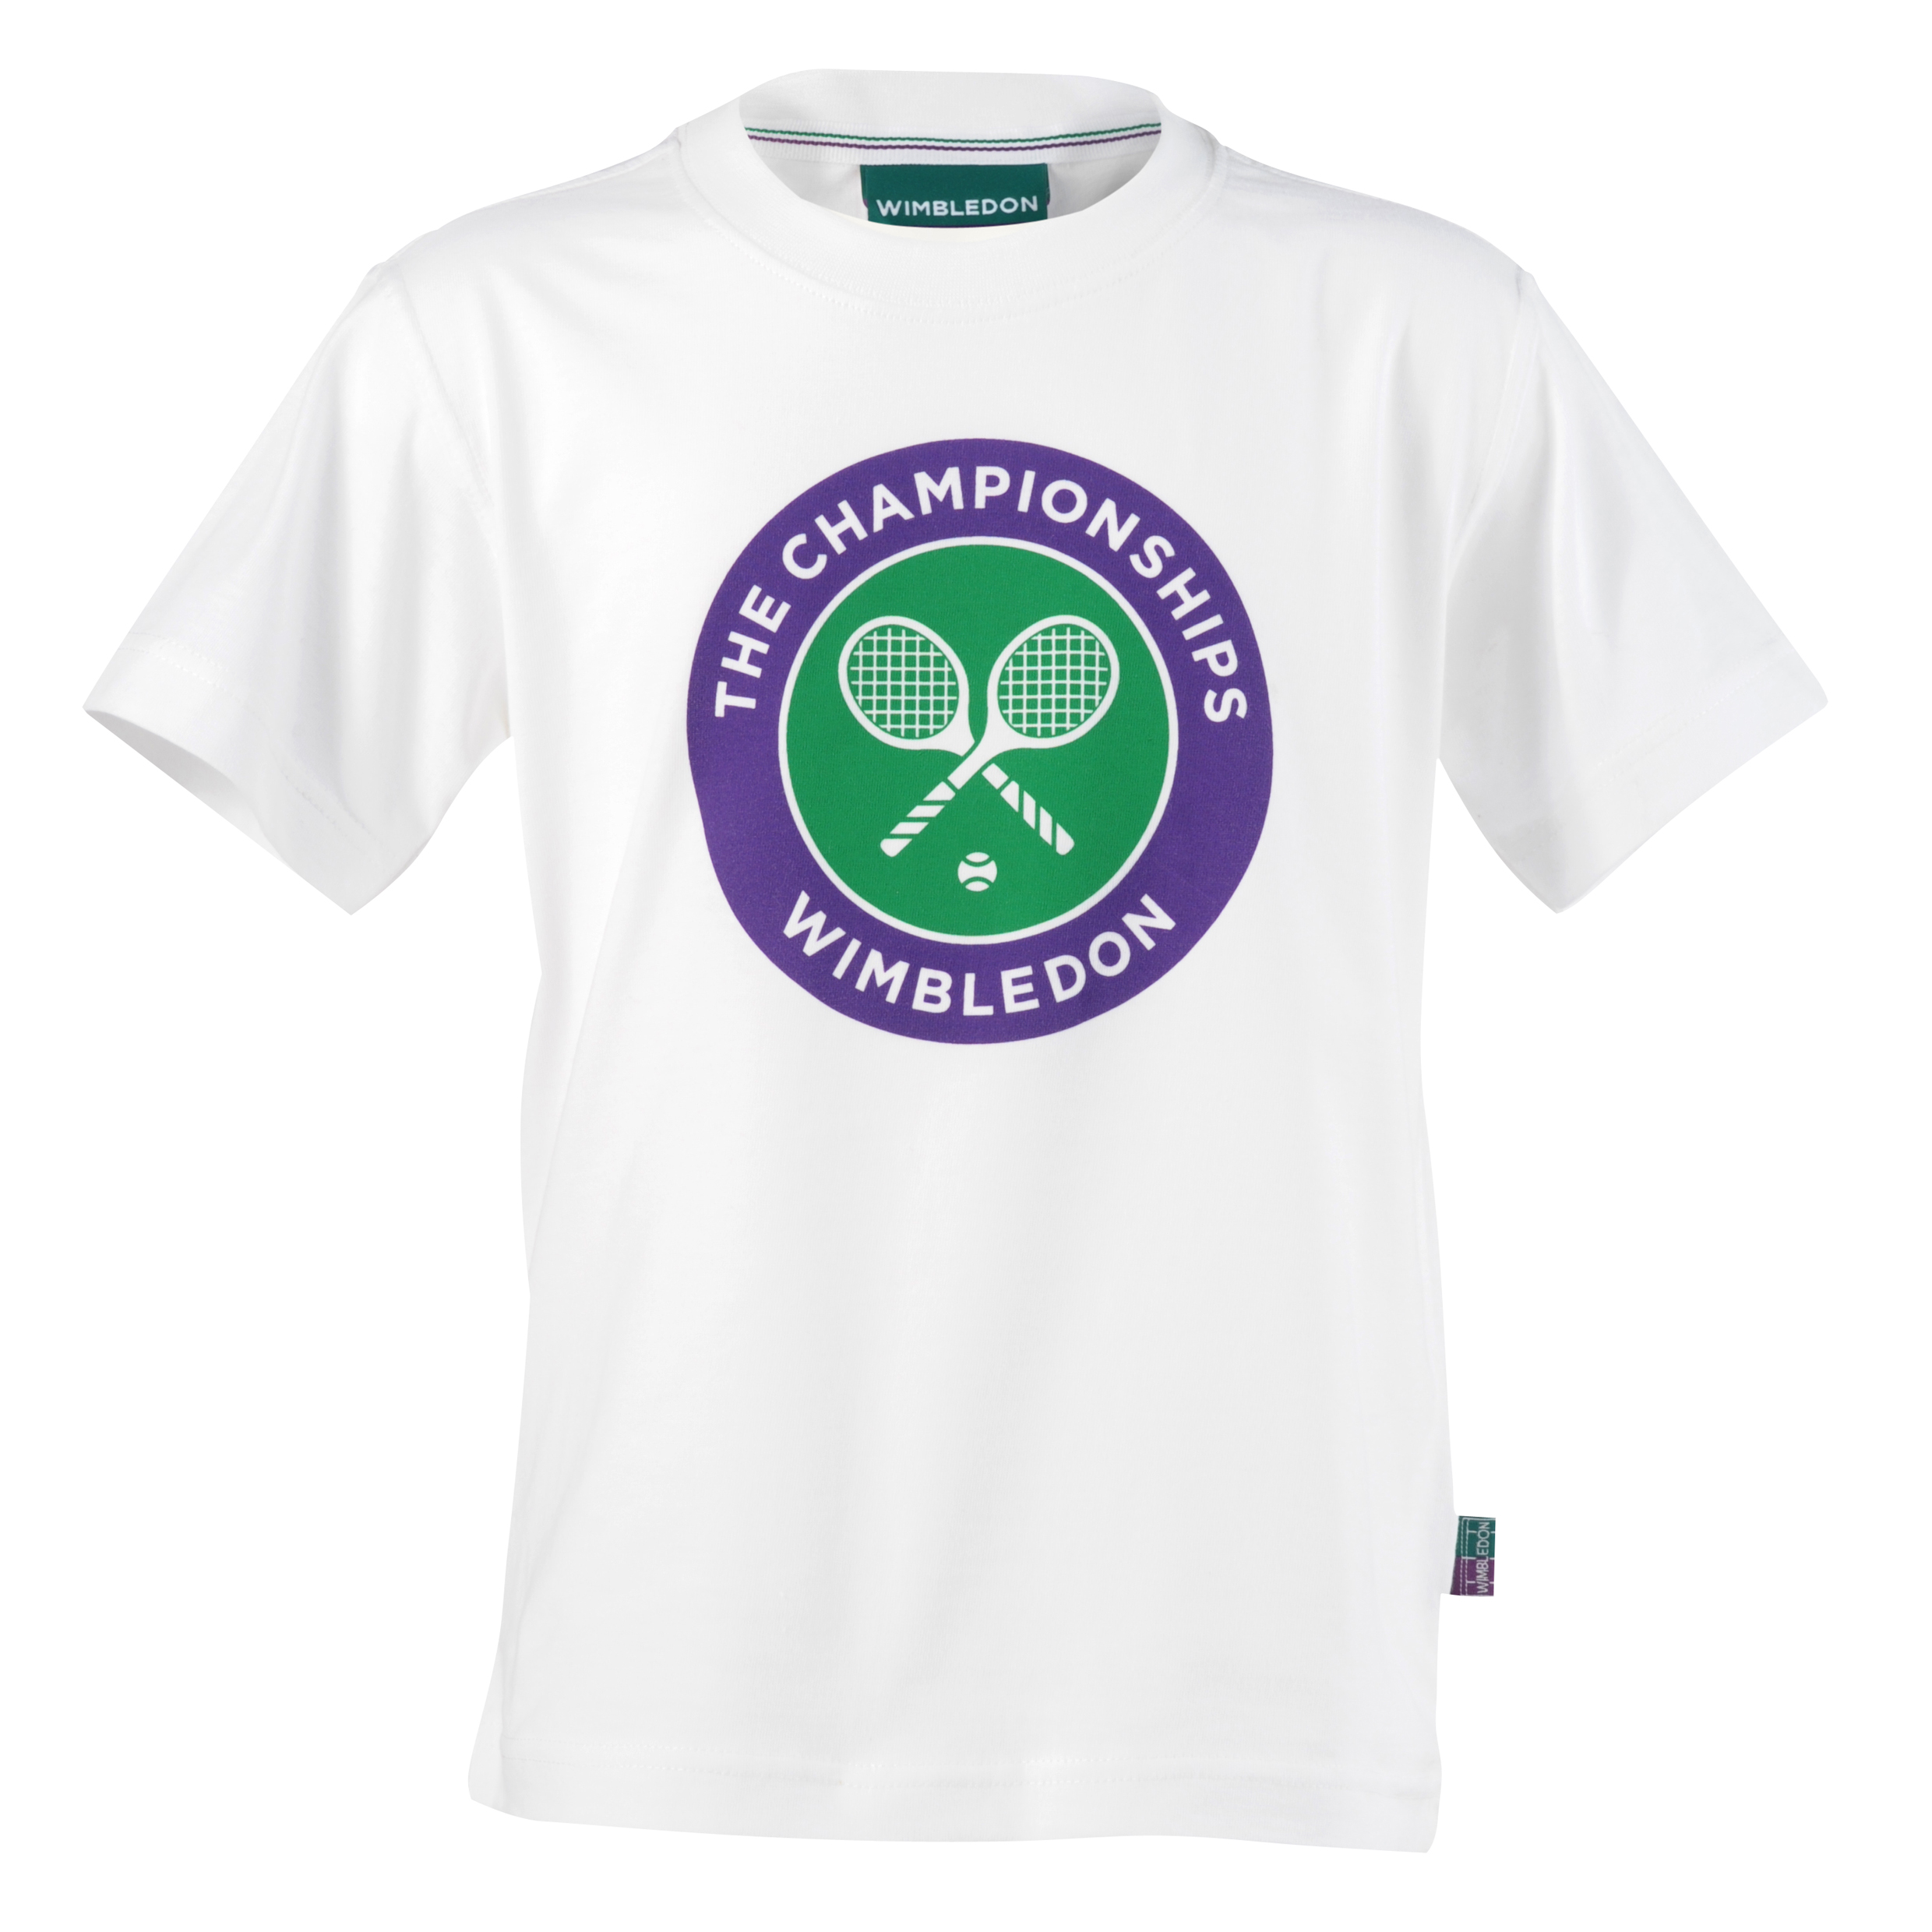 Wimbledon Crossed Rackets Print T-Shirt - Kids White